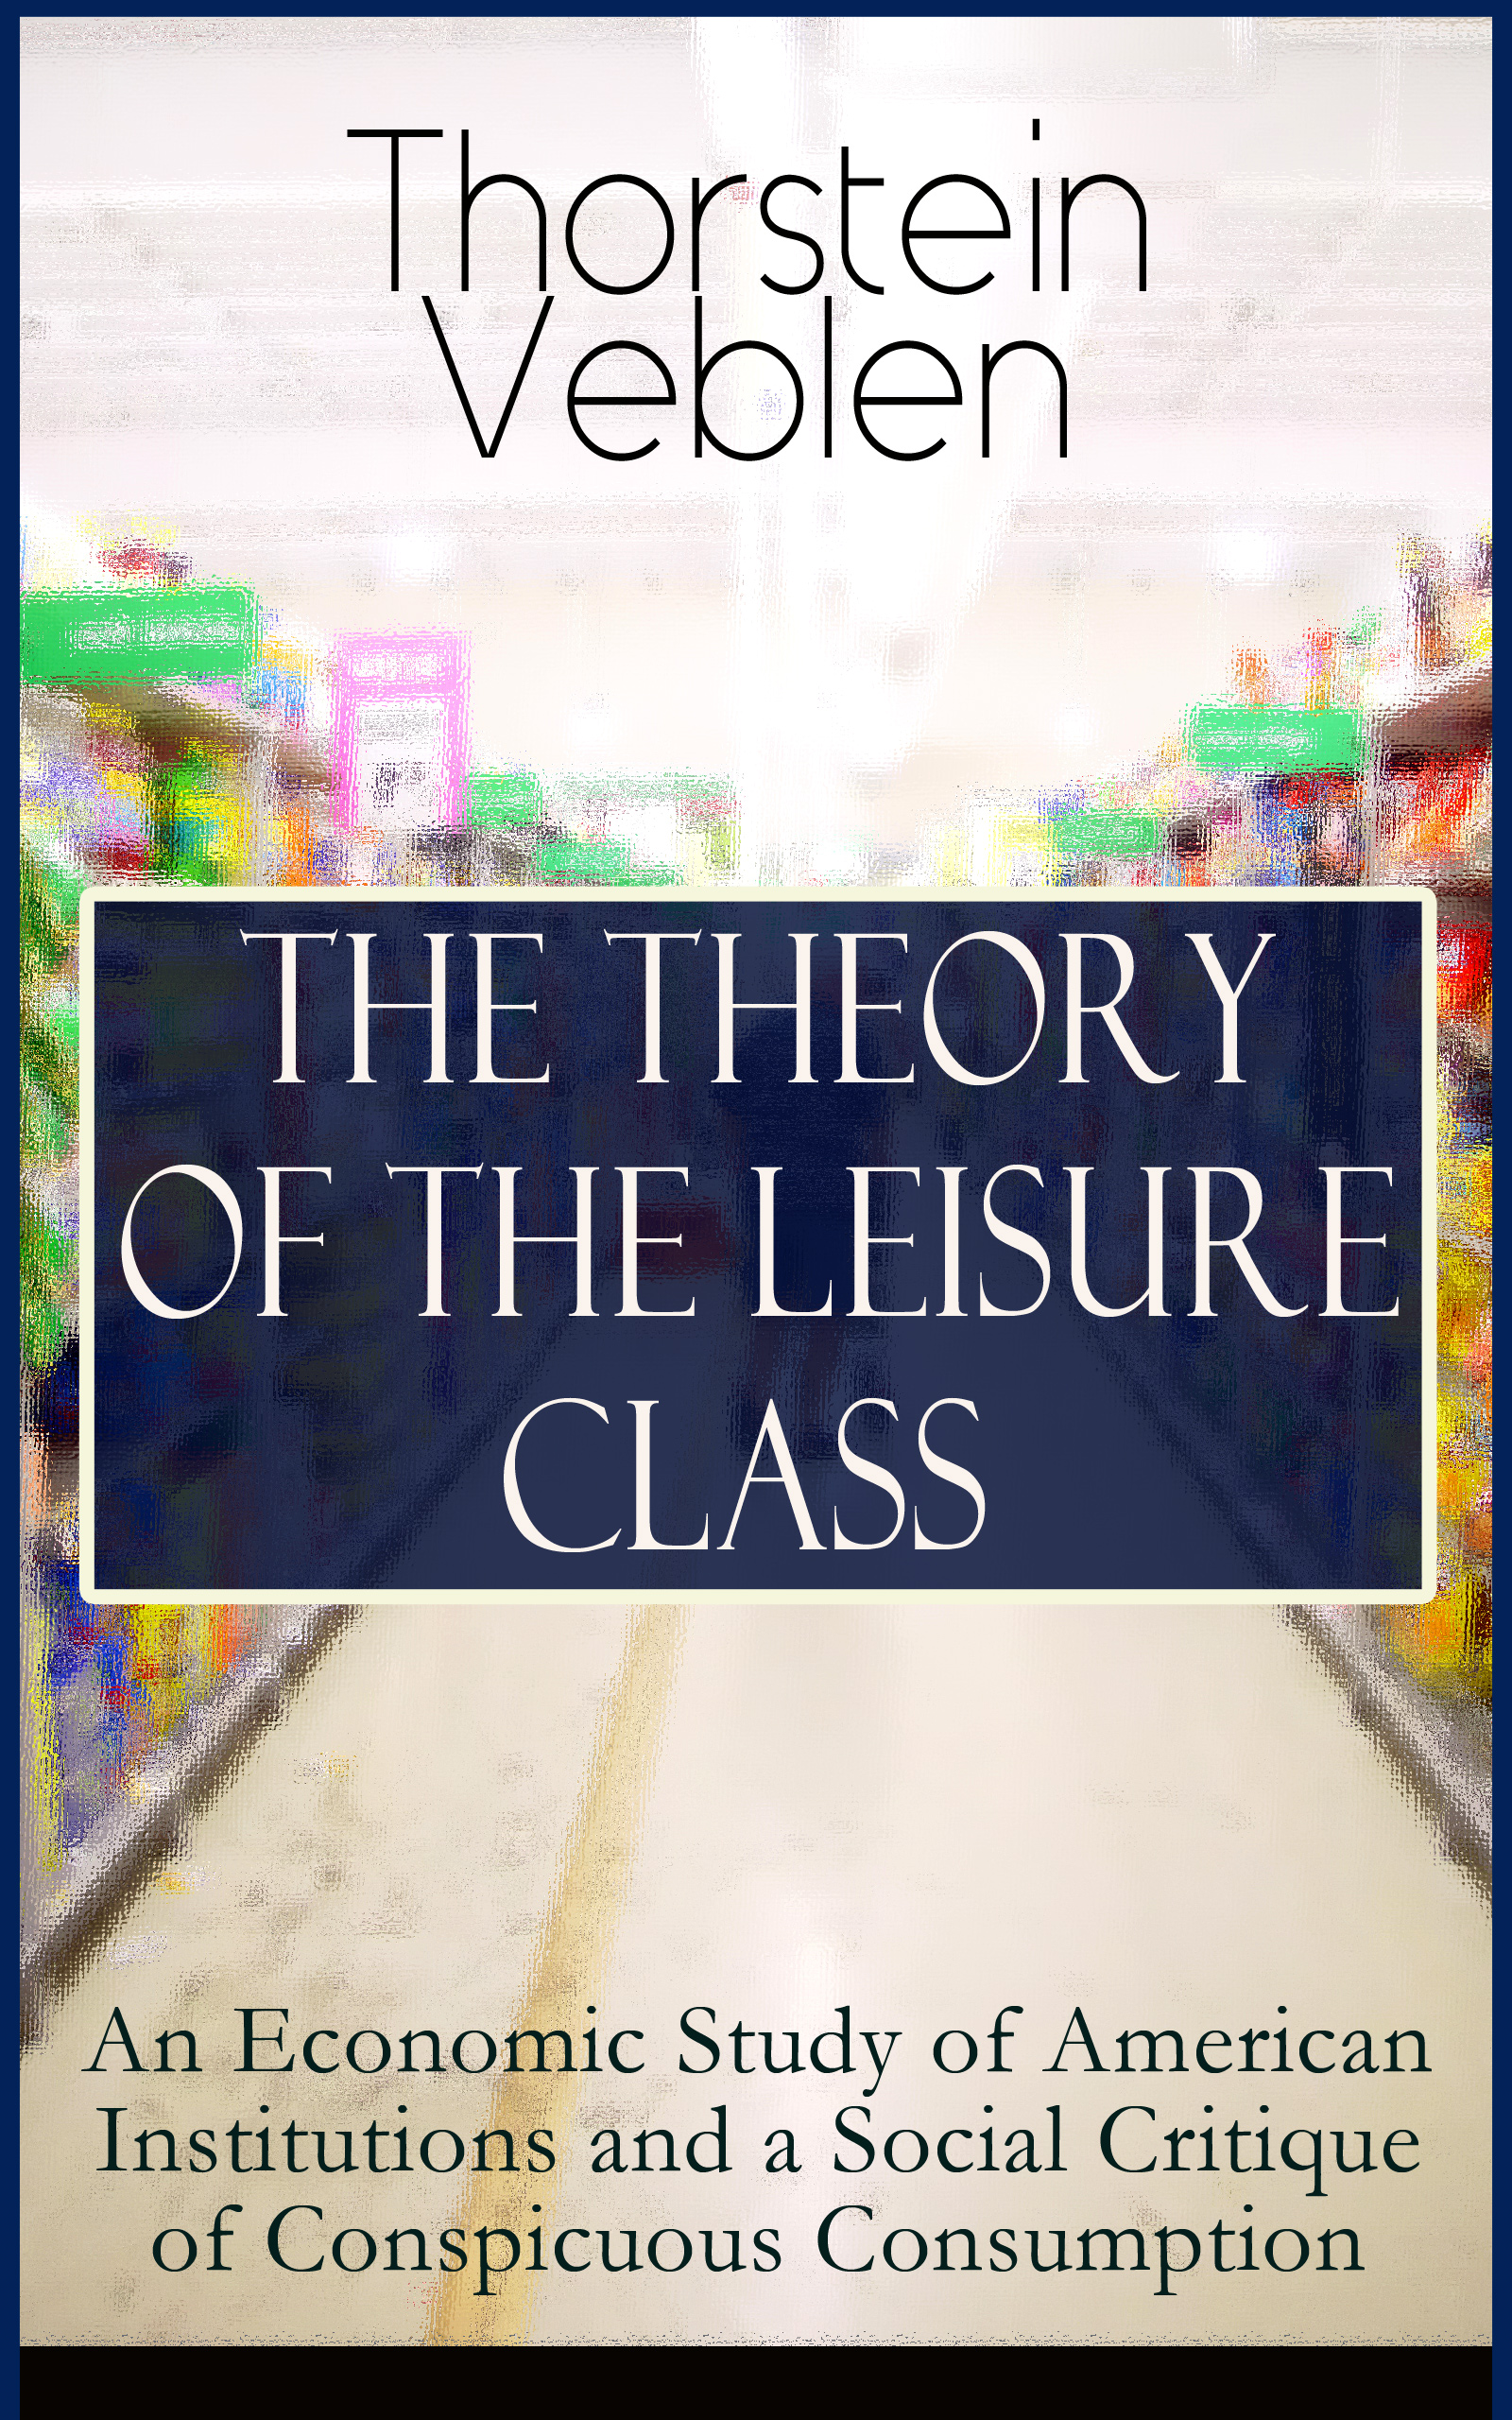 Thorstein Veblen THE THEORY OF THE LEISURE CLASS: An Economic Study of American Institutions and a Social Critique of Conspicuous Consumption an economic study of crop financing by prathama bank